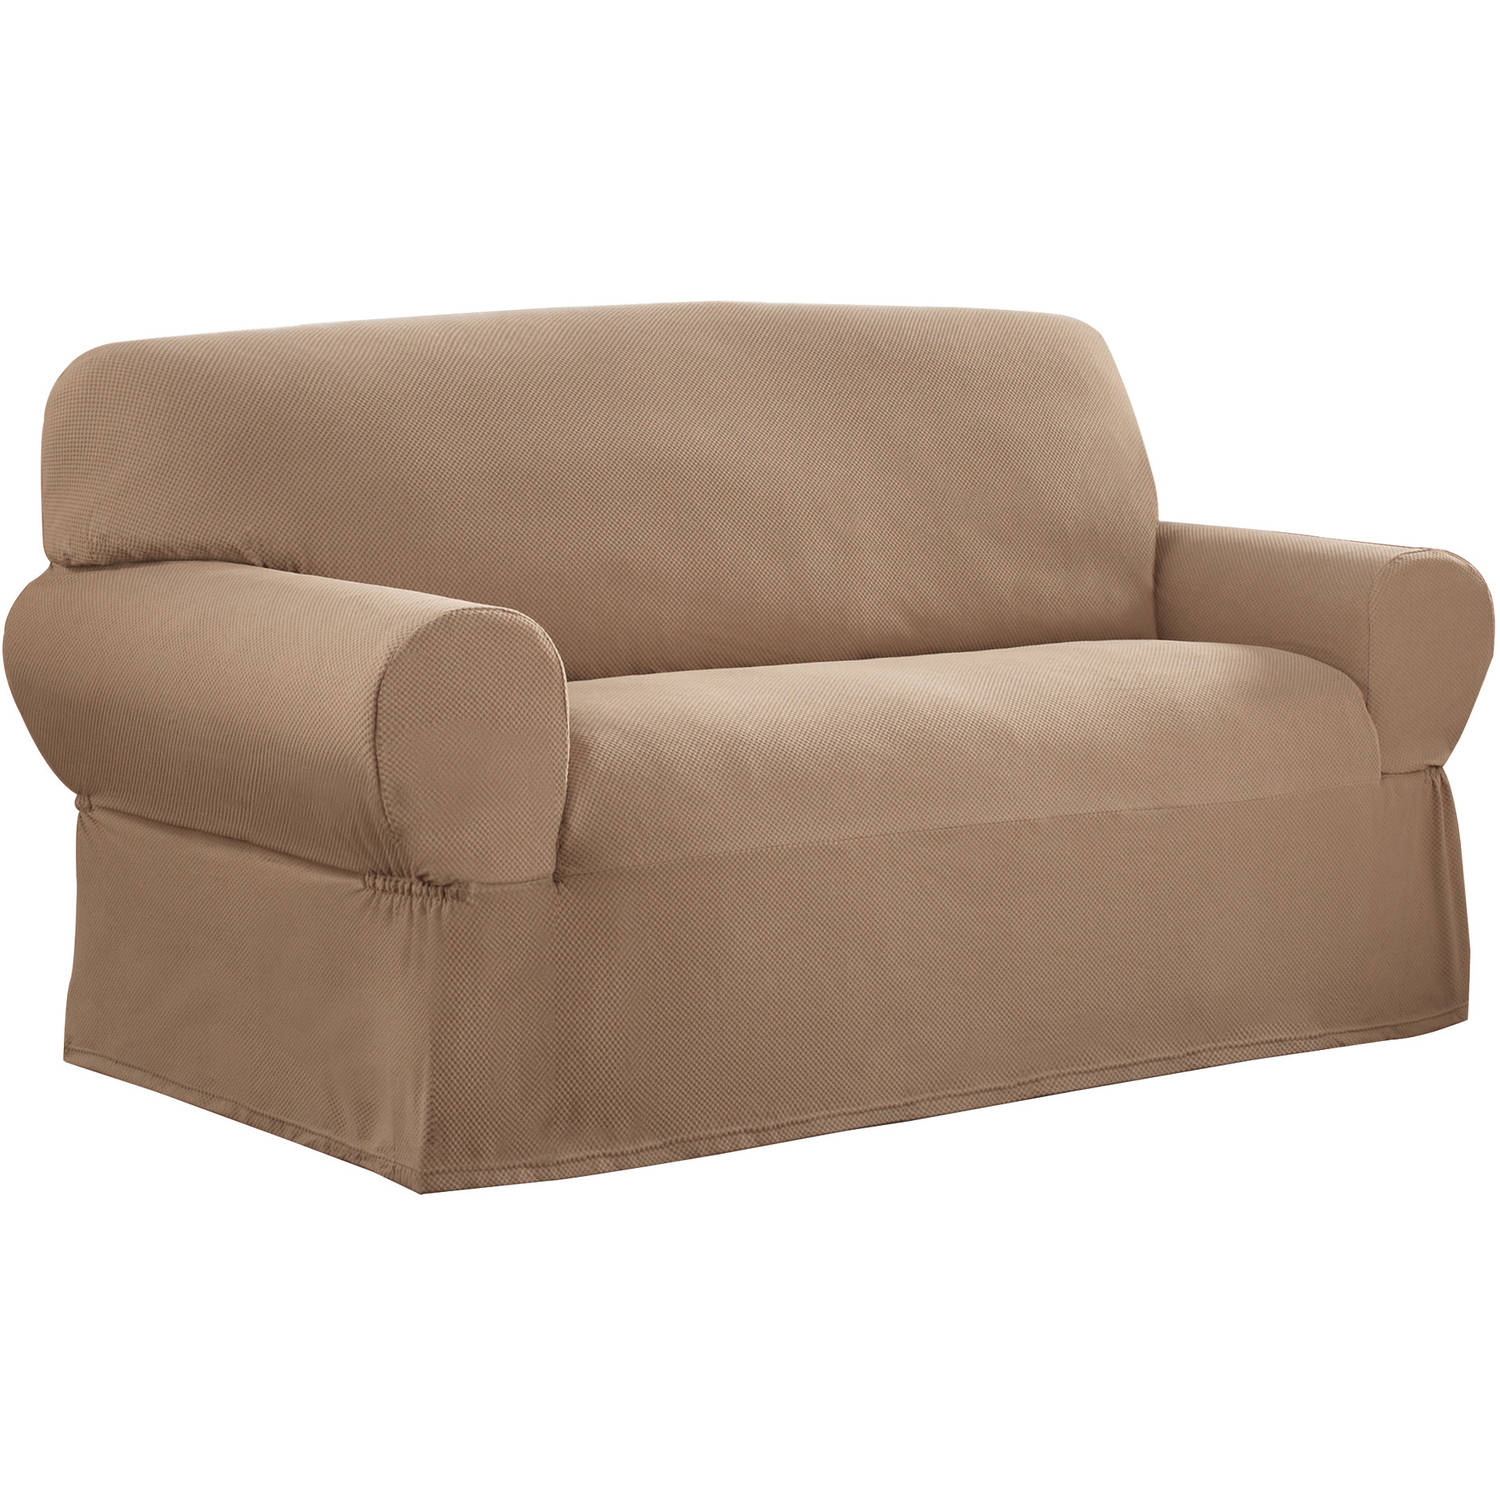 Sure fit cotton duck sofa slipcover Loveseat slipcover